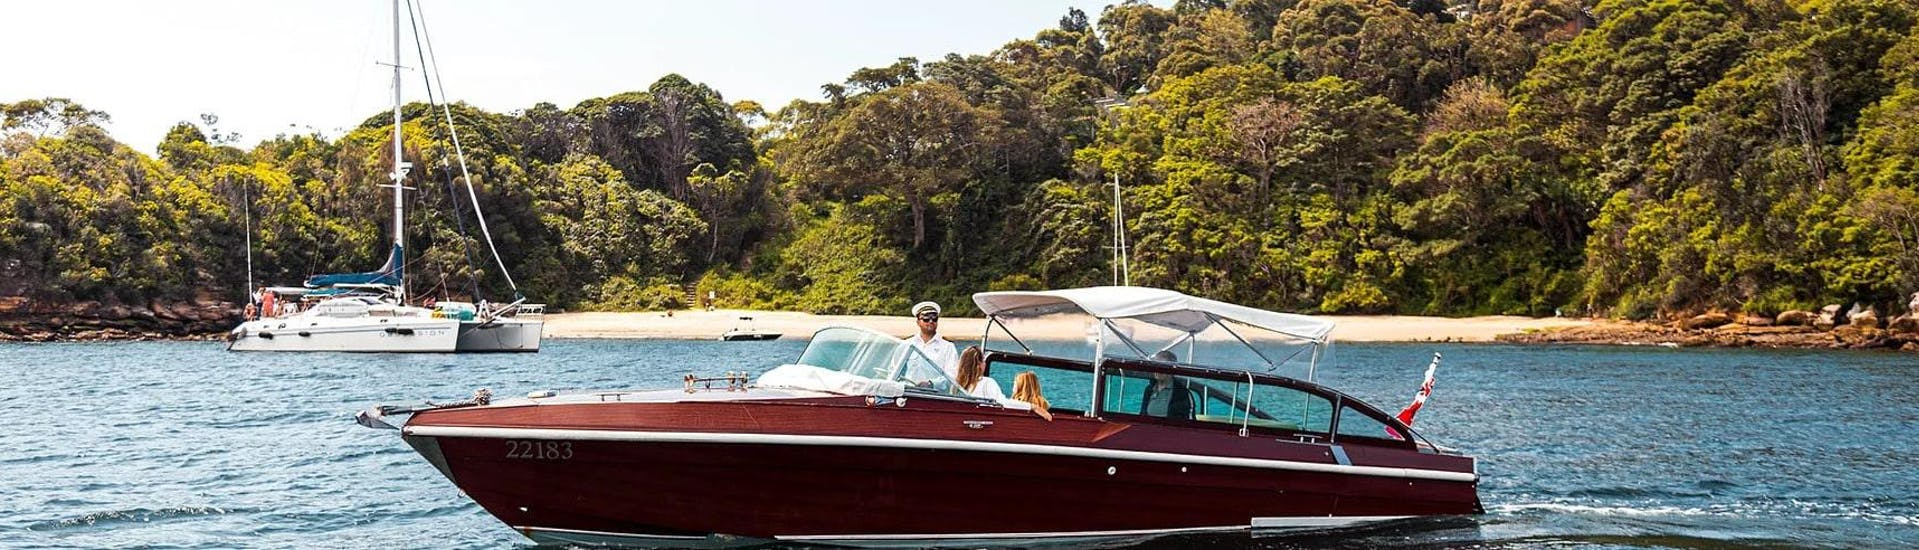 During the Private Luxury Boat Cruise in Sydney to Hidden National Park, tourists are relaxing aboard of hybrid electric vessel from Sydney Luxury Cruise.